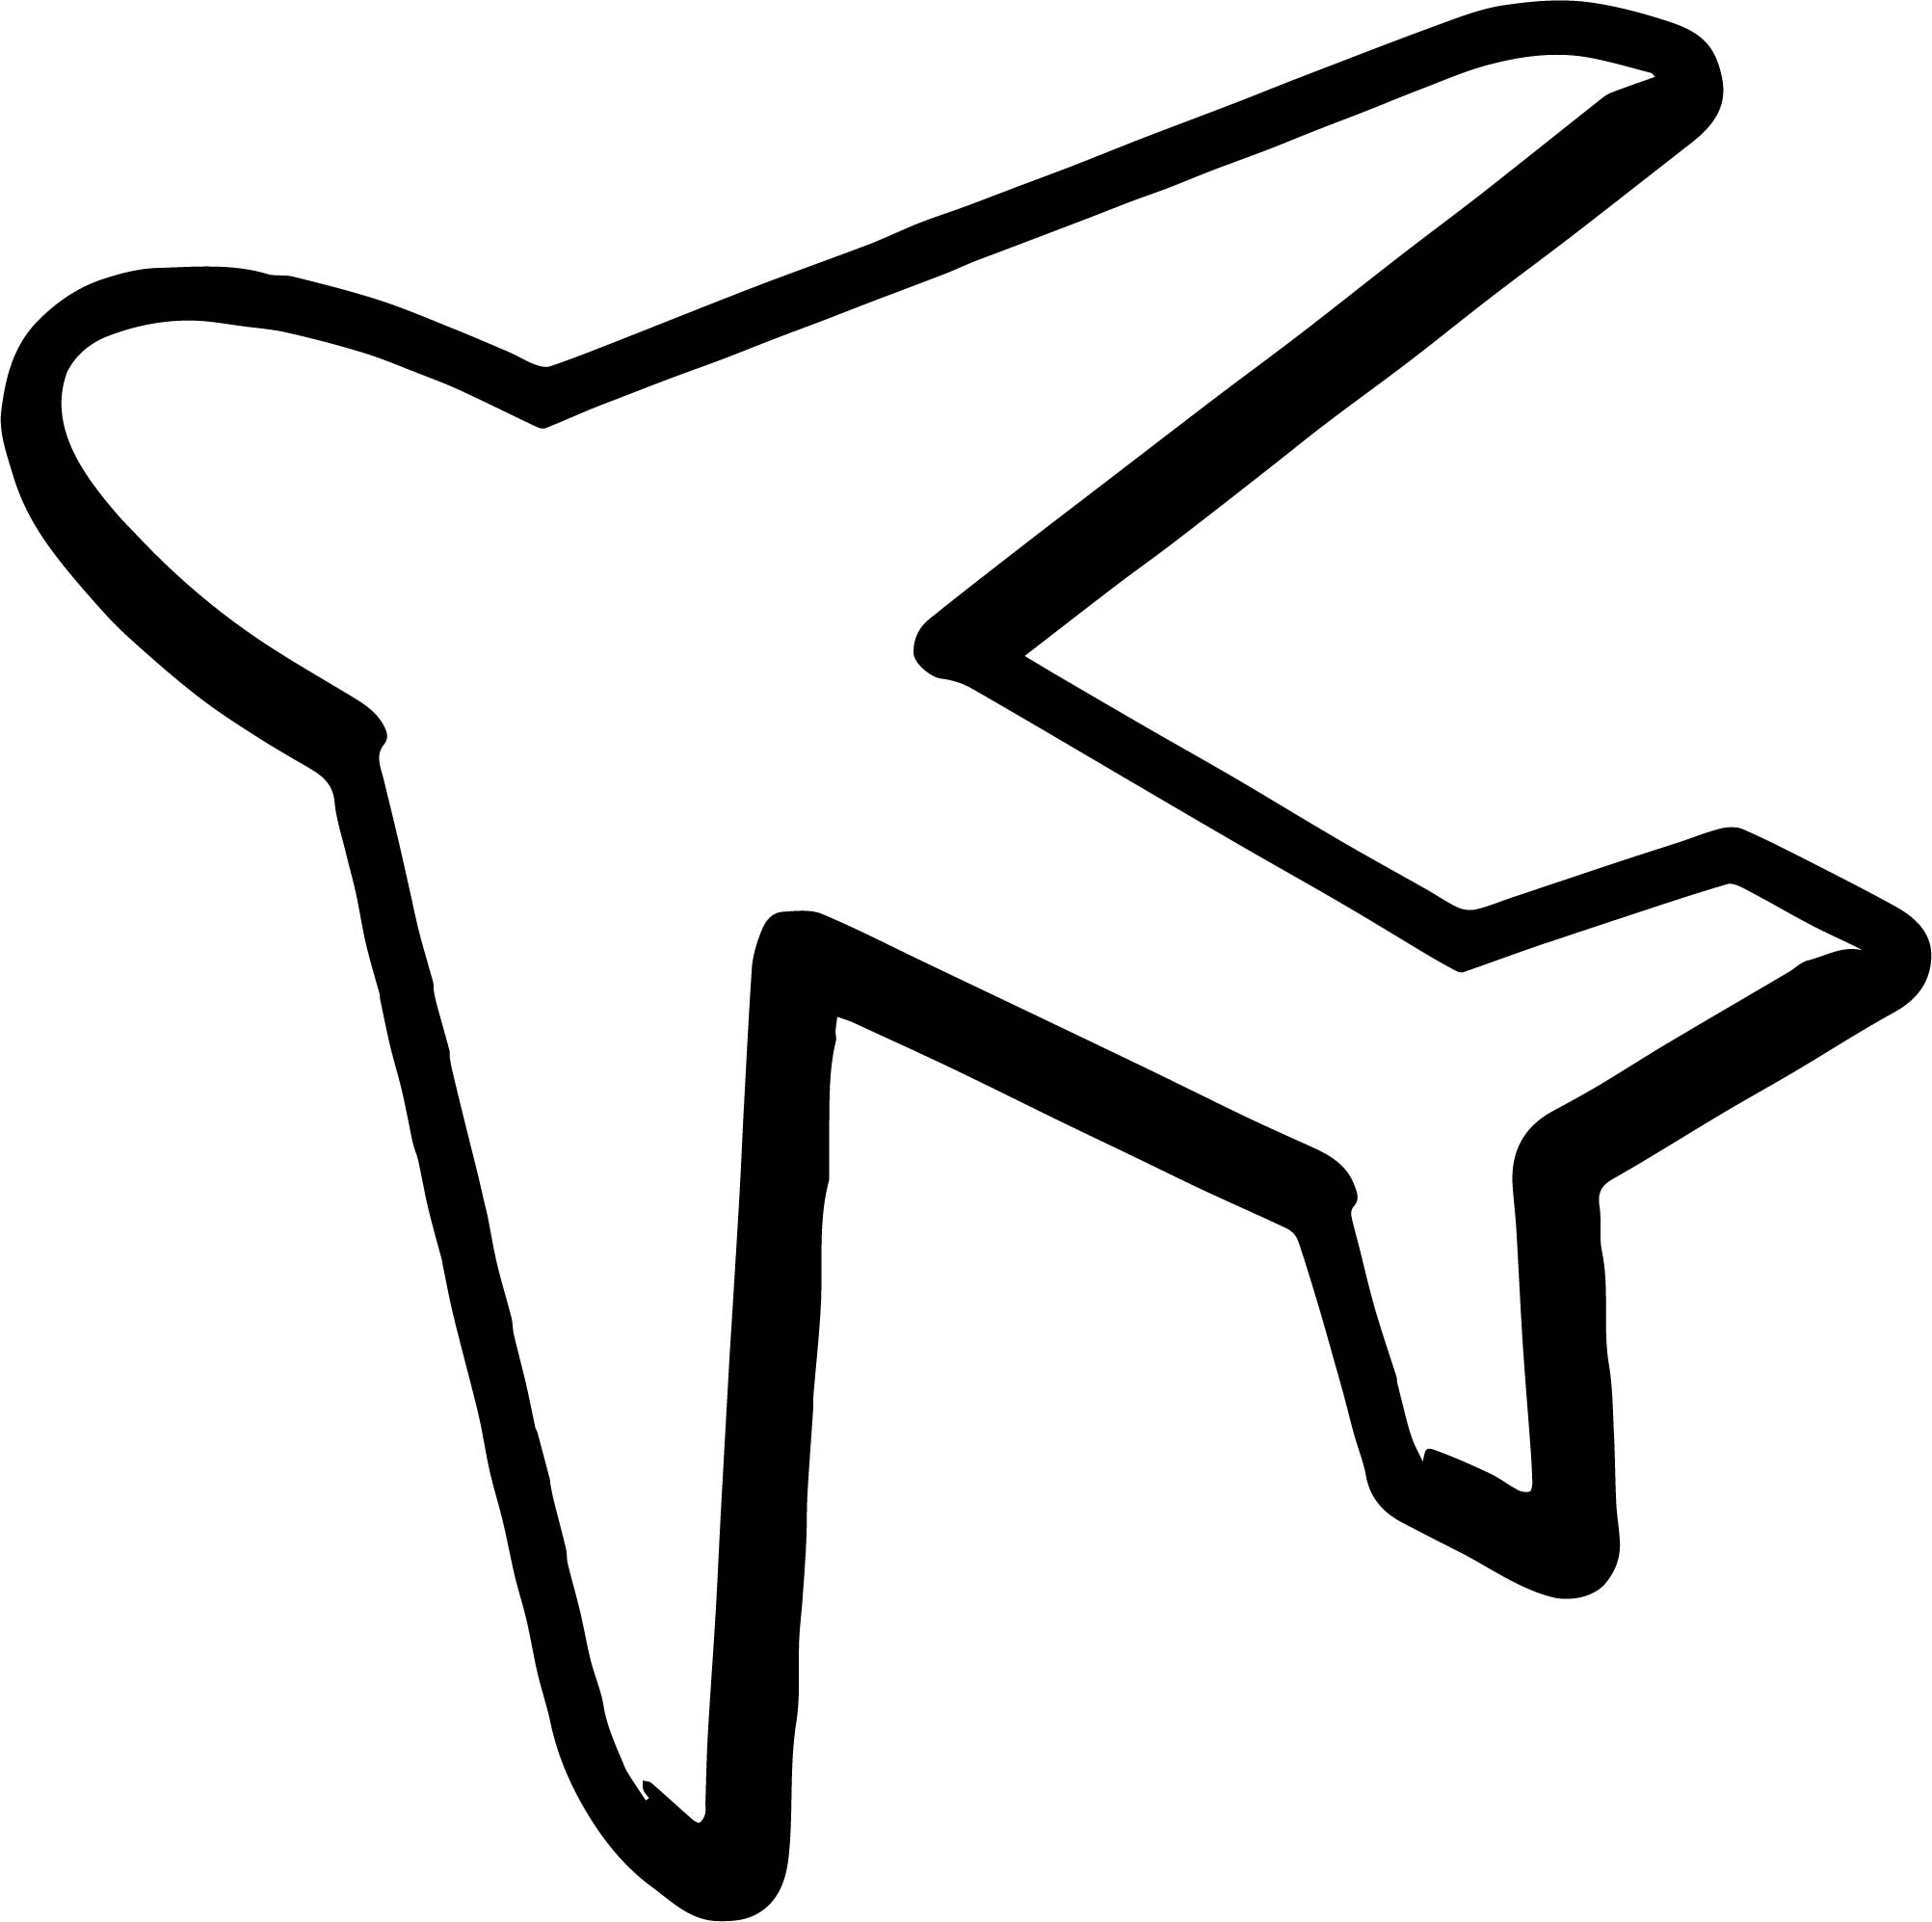 2005x1995 Airplane Silhouette Coloring Page Wecoloringpage